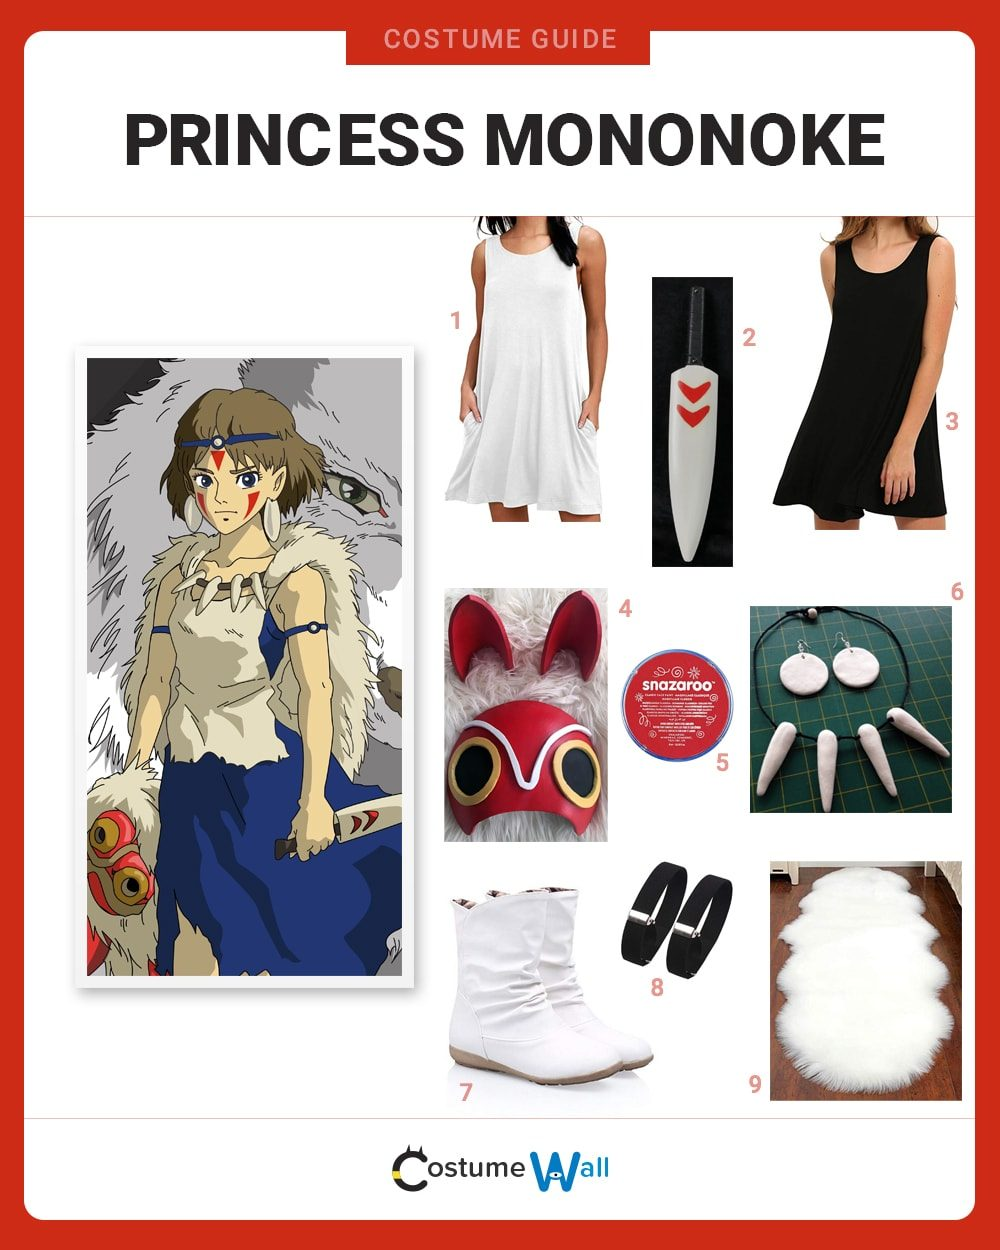 Princess Mononoke Costume Guide